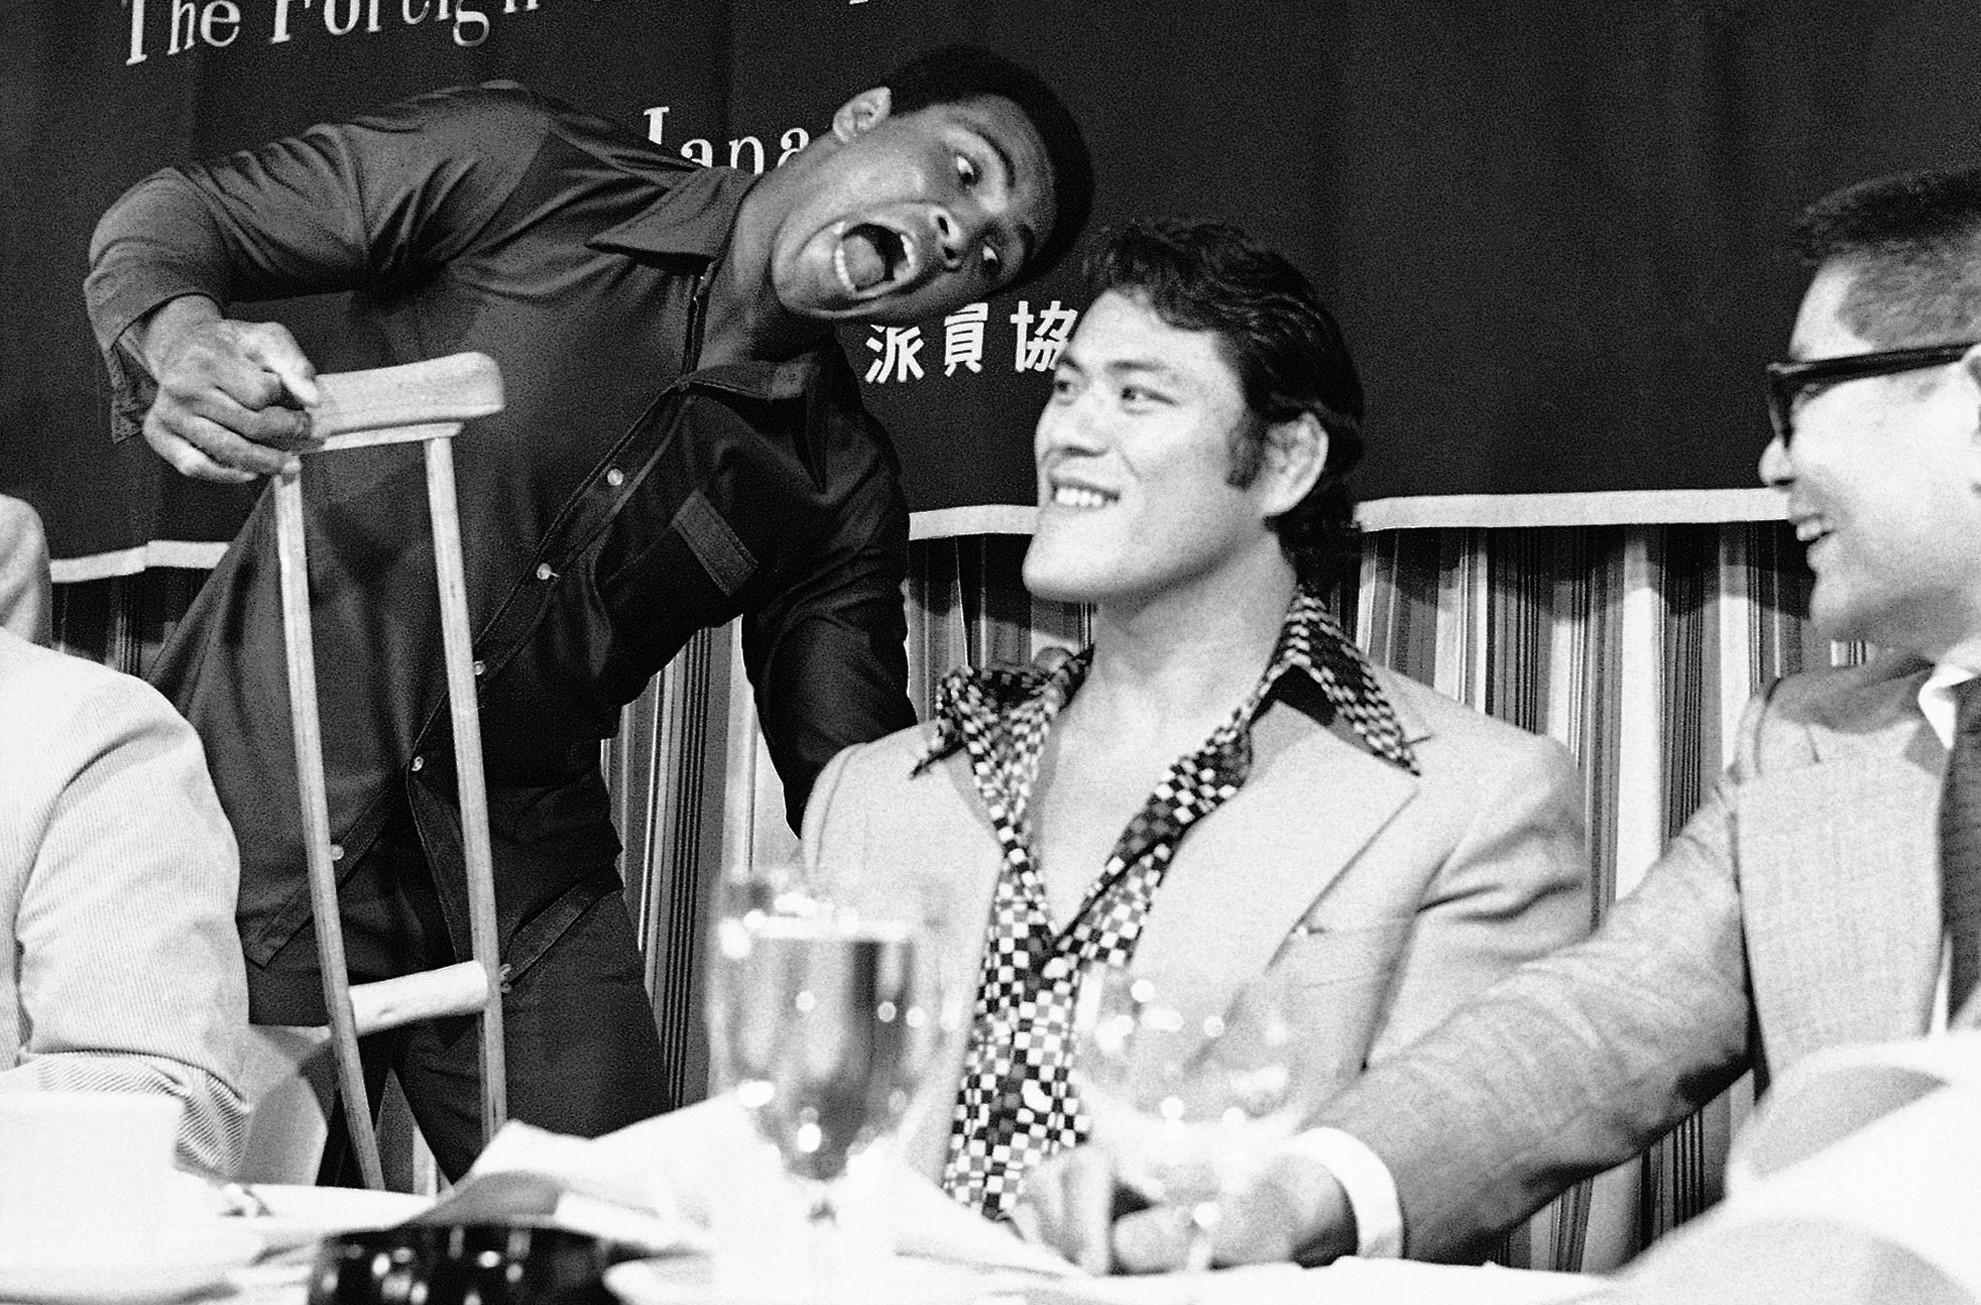 Muhammad Ali re-gifts a crutch to Antonio Inoki.